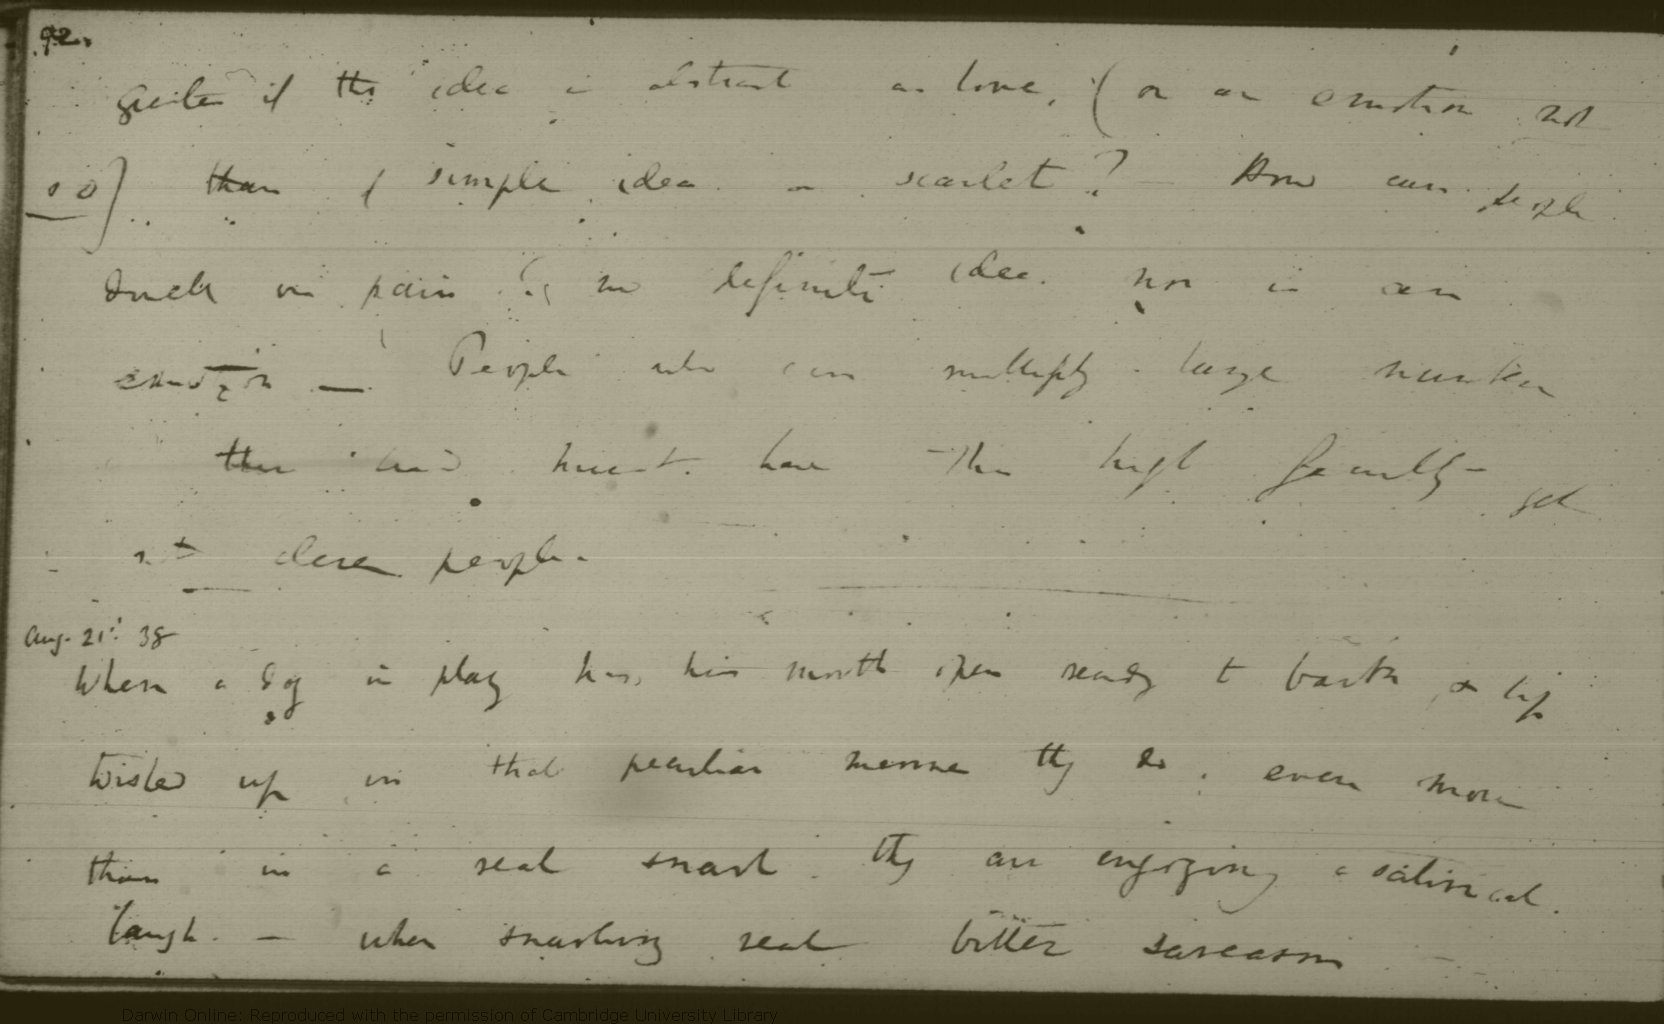 8ae9a84d0008 Darwin, C. R. Notebook M : [Metaphysics on morals and speculations on  expression (1838)]. CUL-DAR125.-